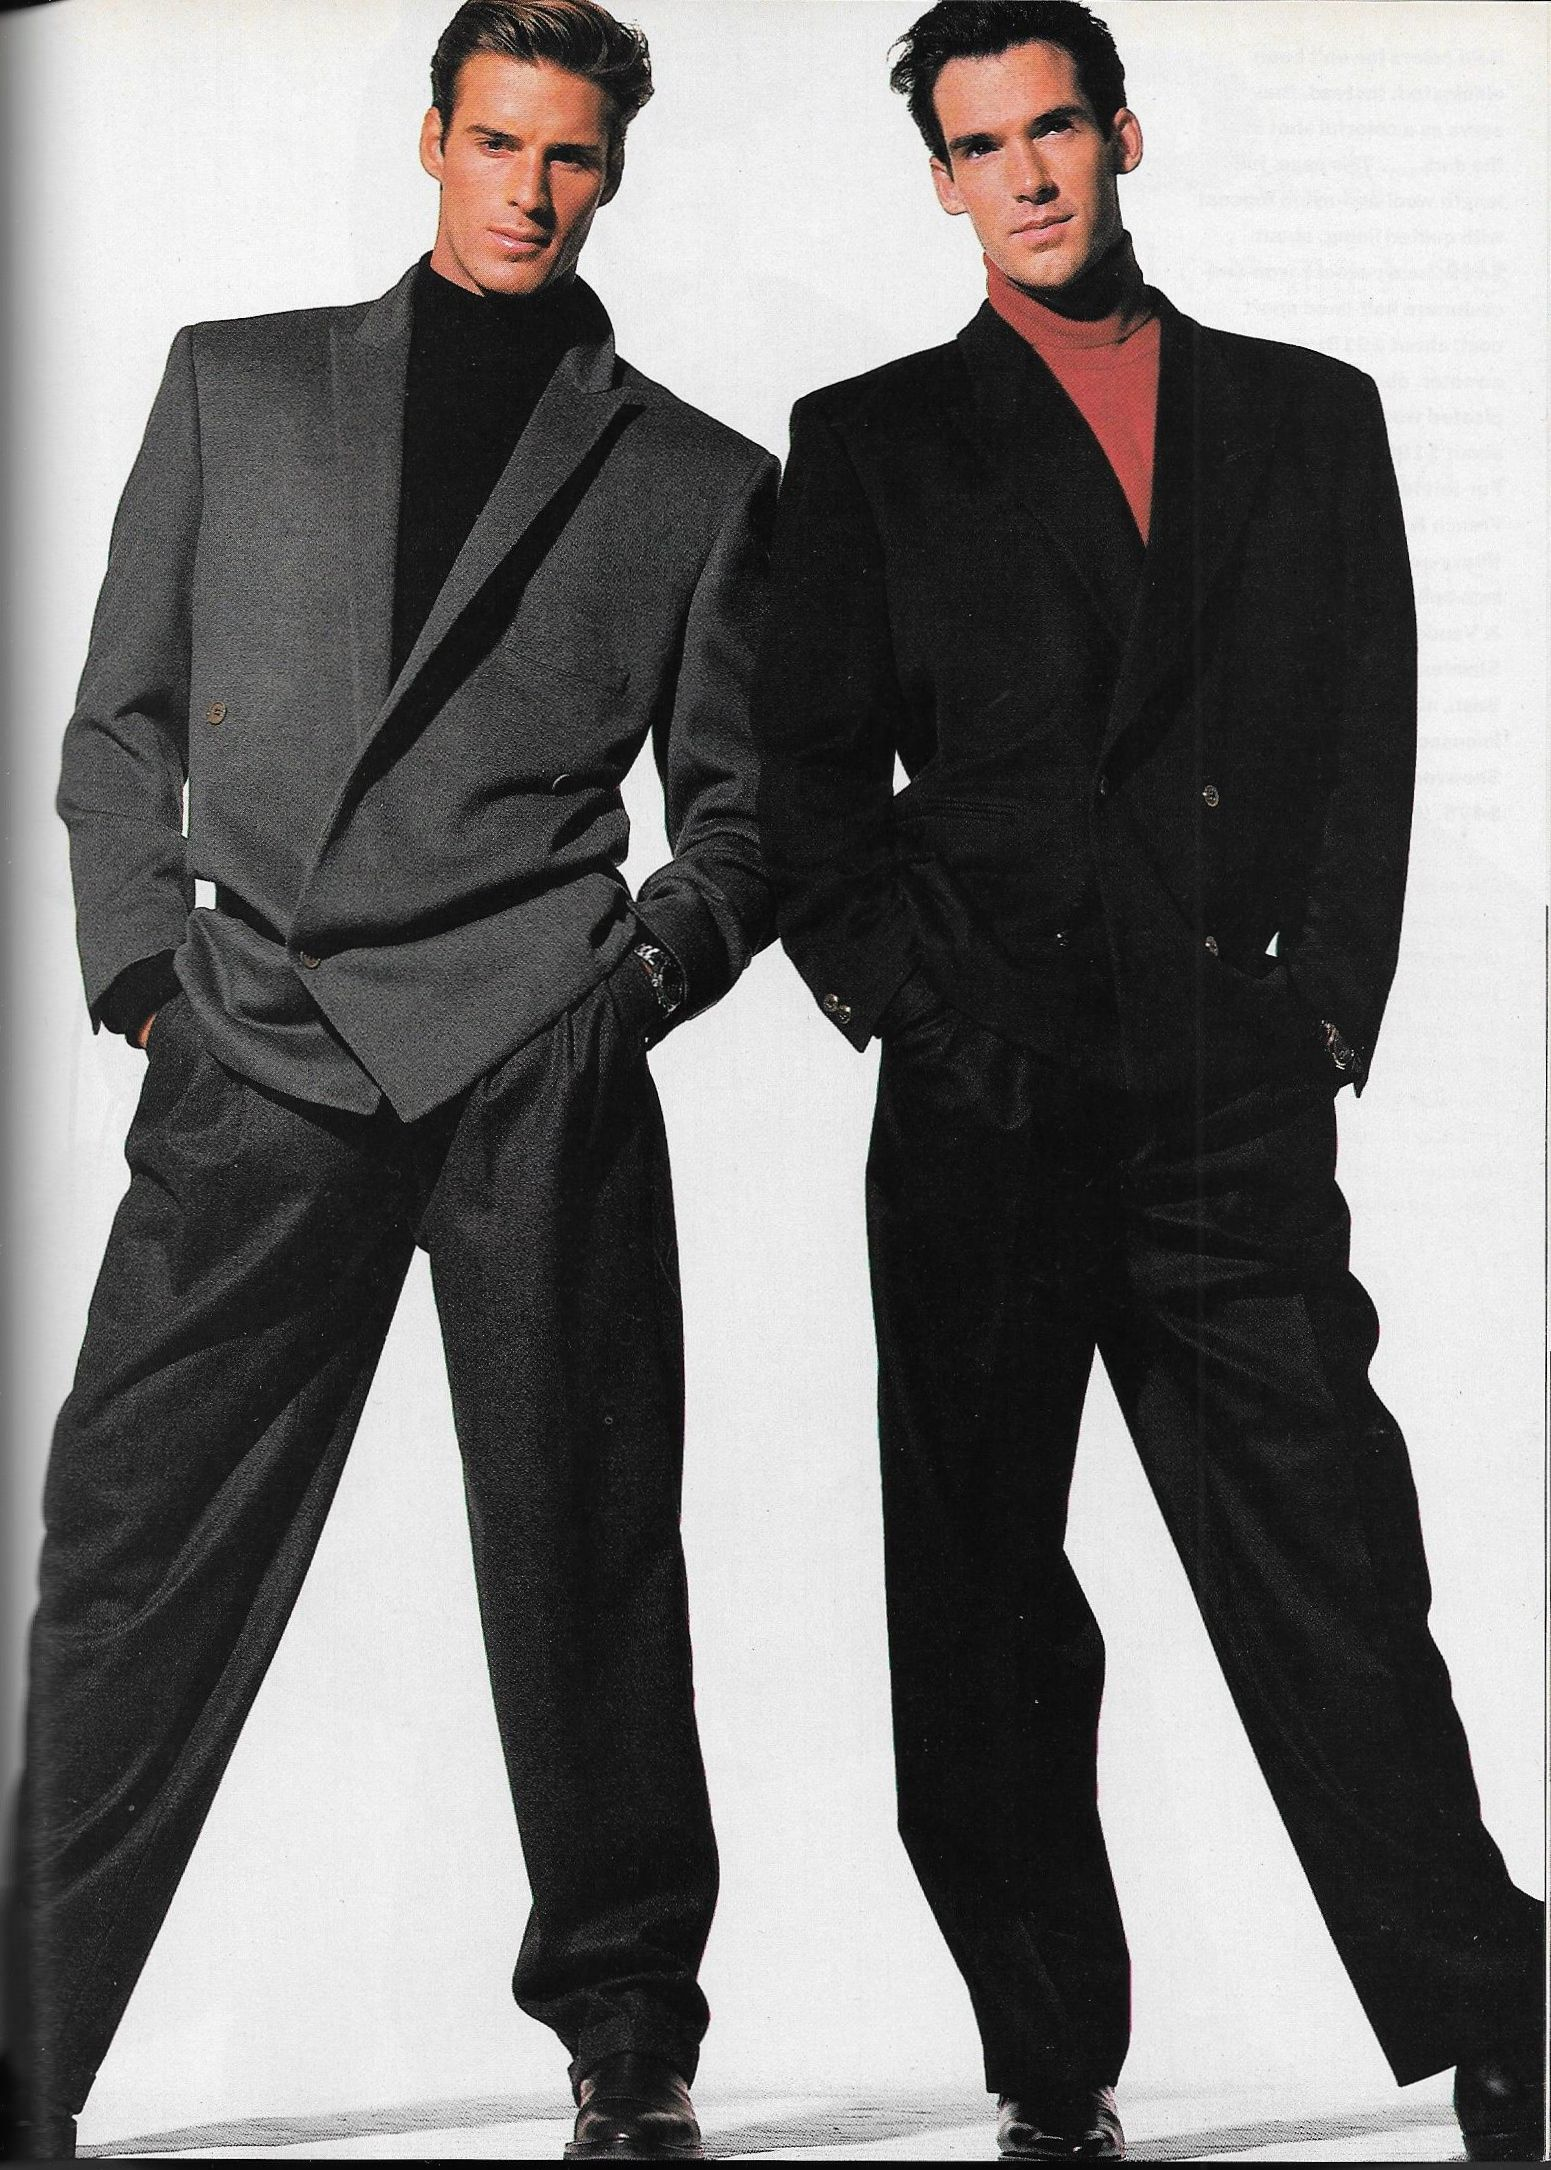 gq october 1987 | 1980s in 2019 | 80s fashion men, 1980s